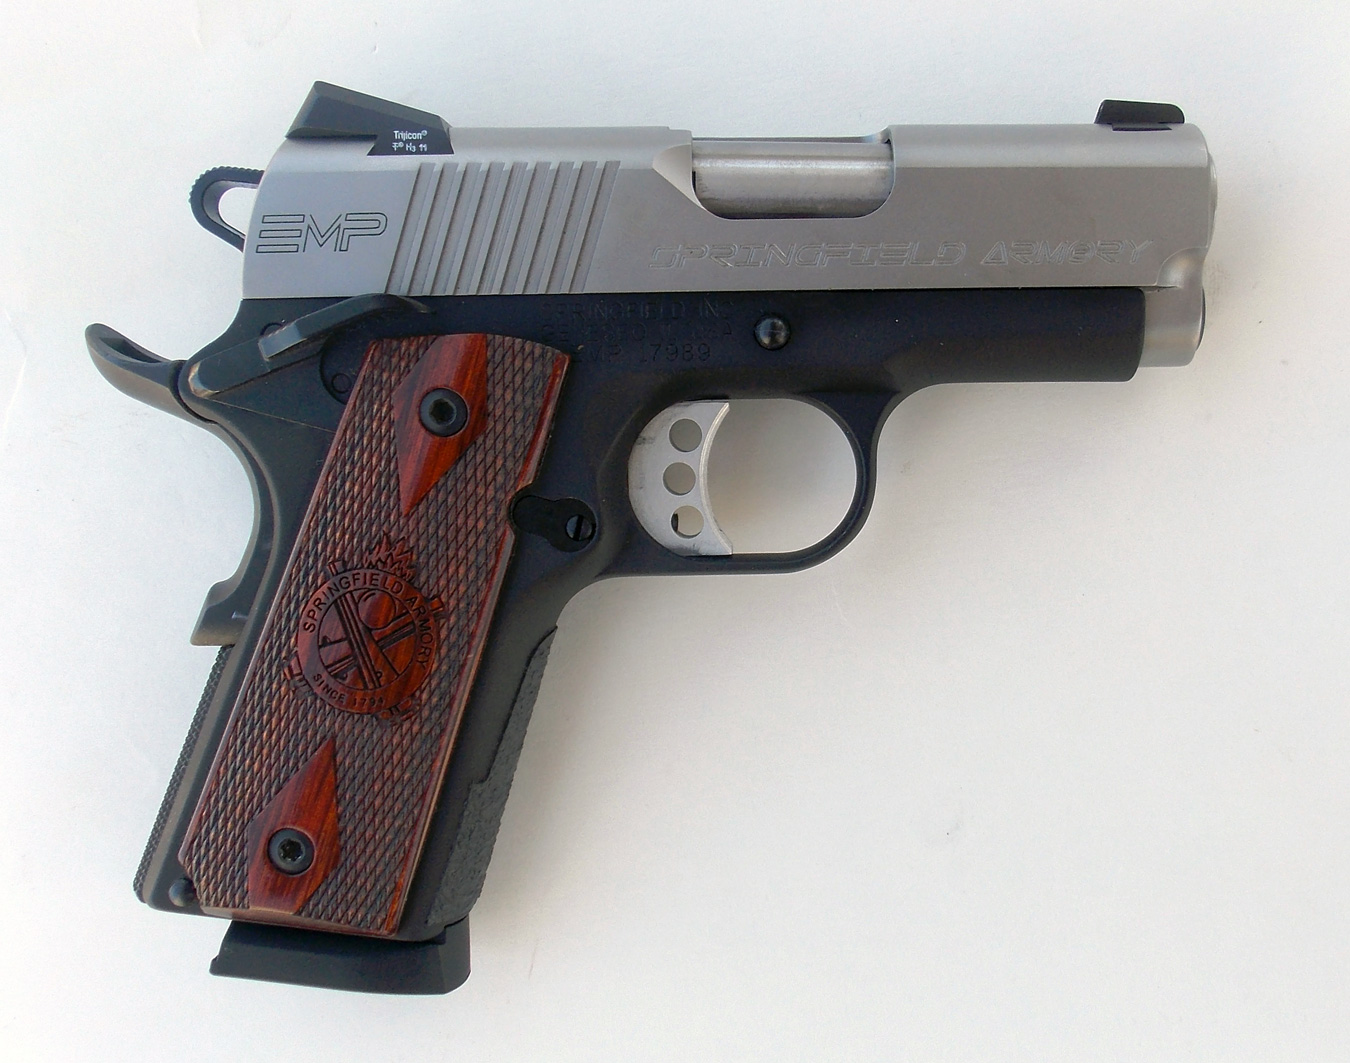 Springfield EMP pistol right profile